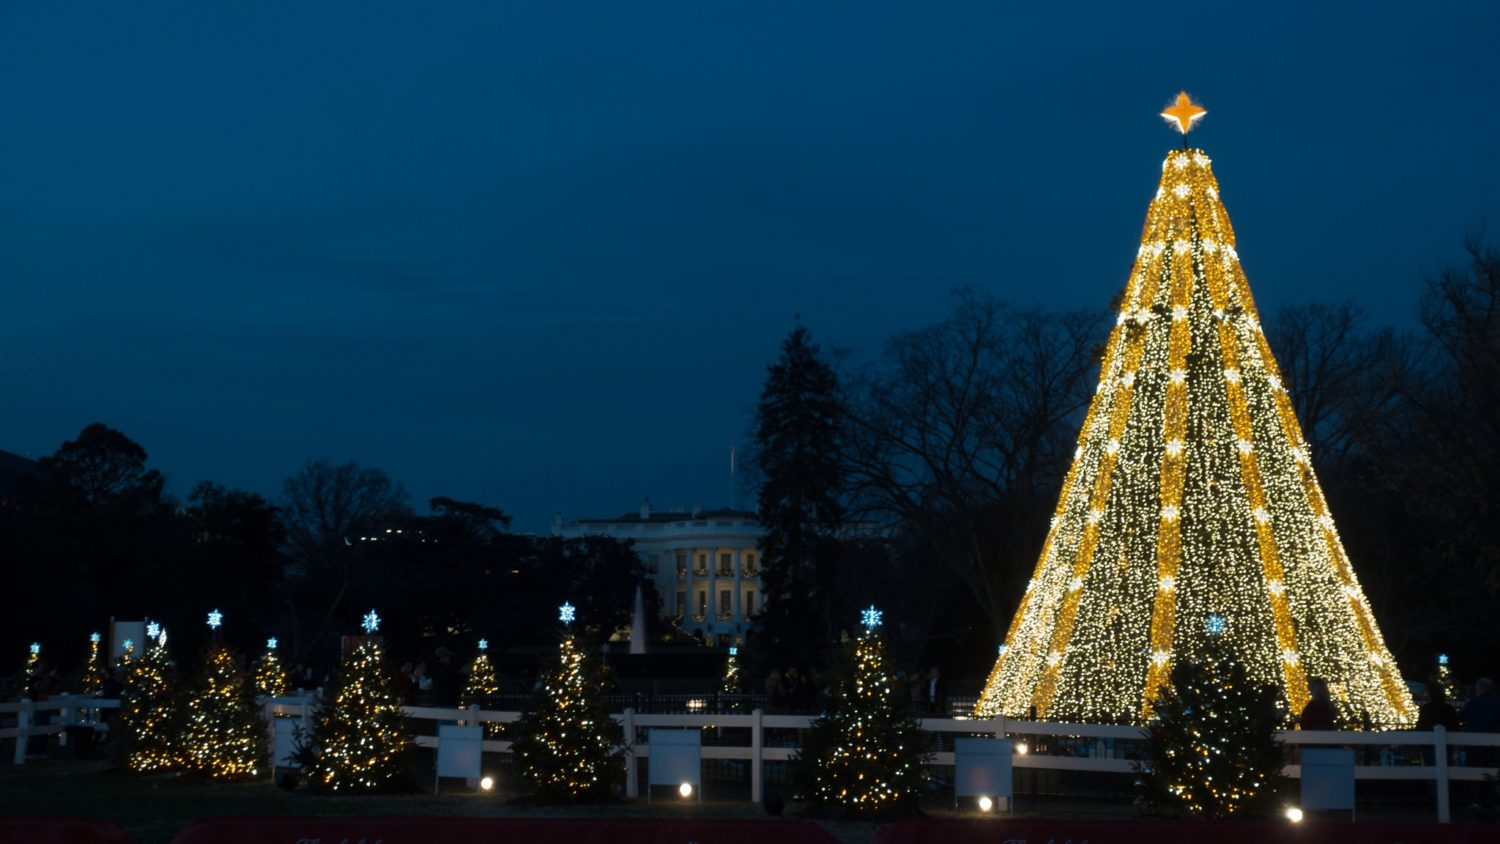 National Christmas Tree Lighting.Here Are The Street Closures For The National Christmas Tree